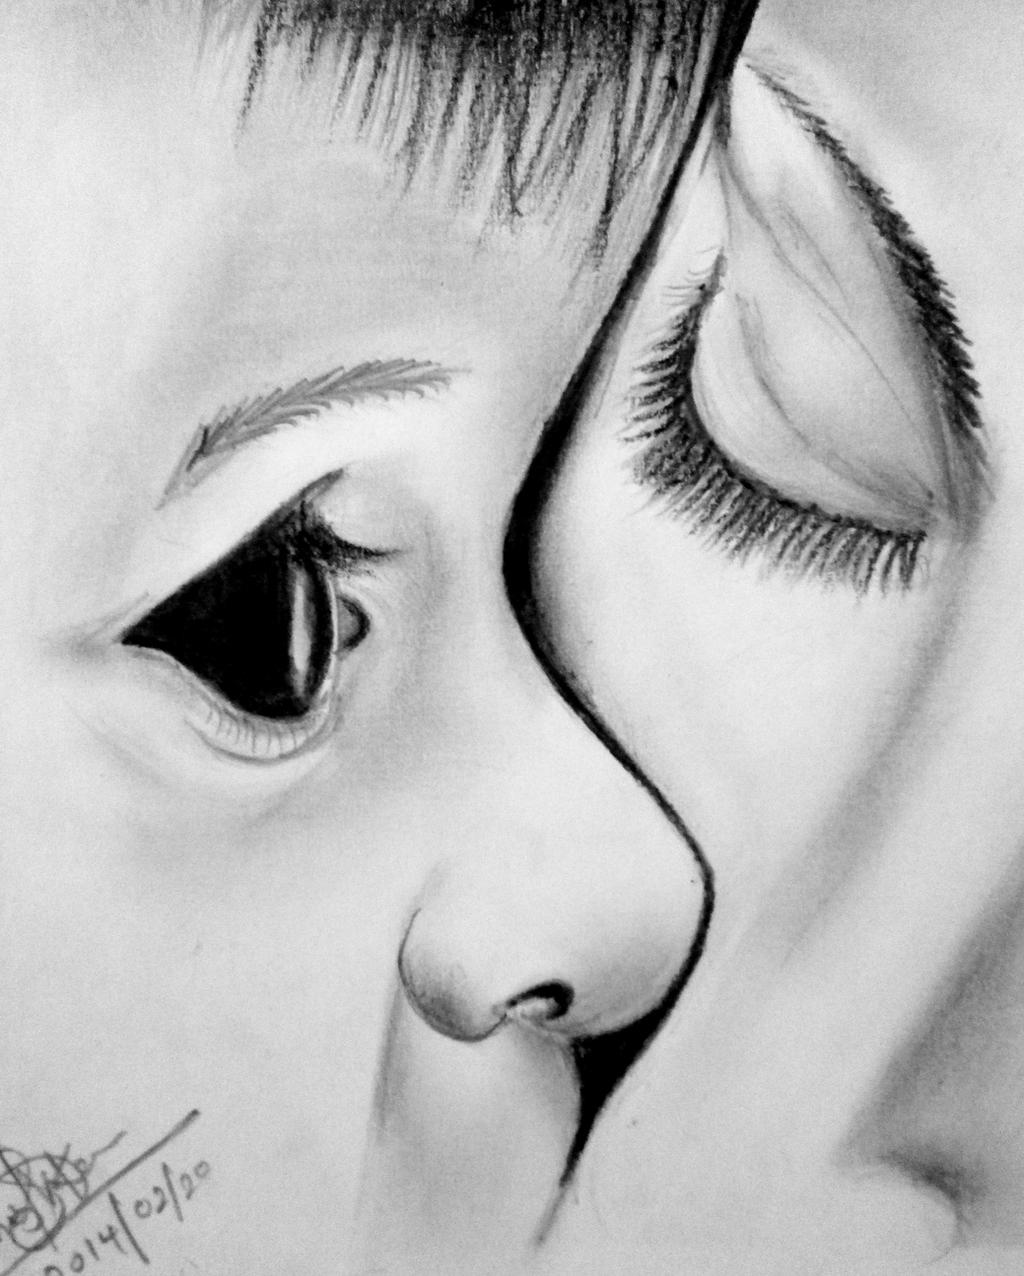 Crteži olovkom/grafika - Page 22 Baby_and_mother_love_pencil_art_by_dhanu92tenshi-d7c1vaa